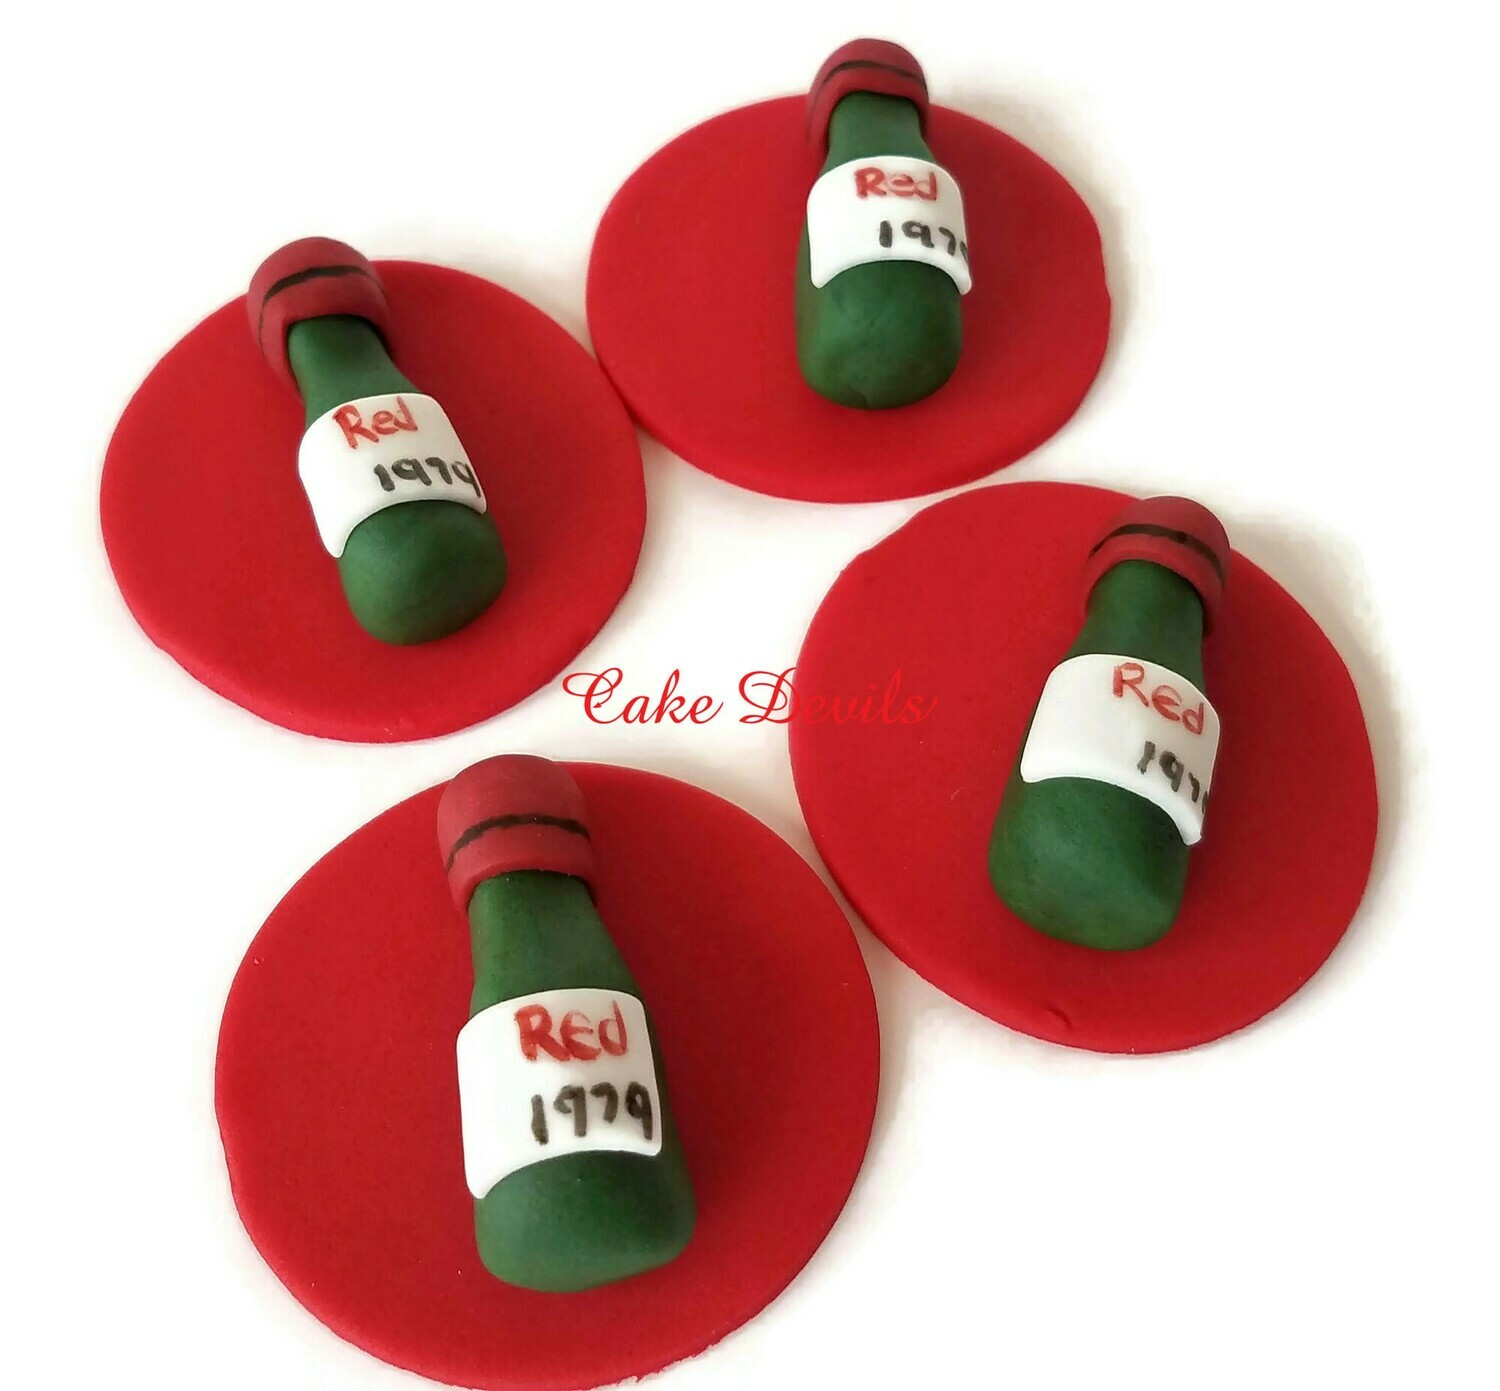 Wine Bottles Fondant Cupcake Toppers, great for a birthday party, dinner, or picnic!